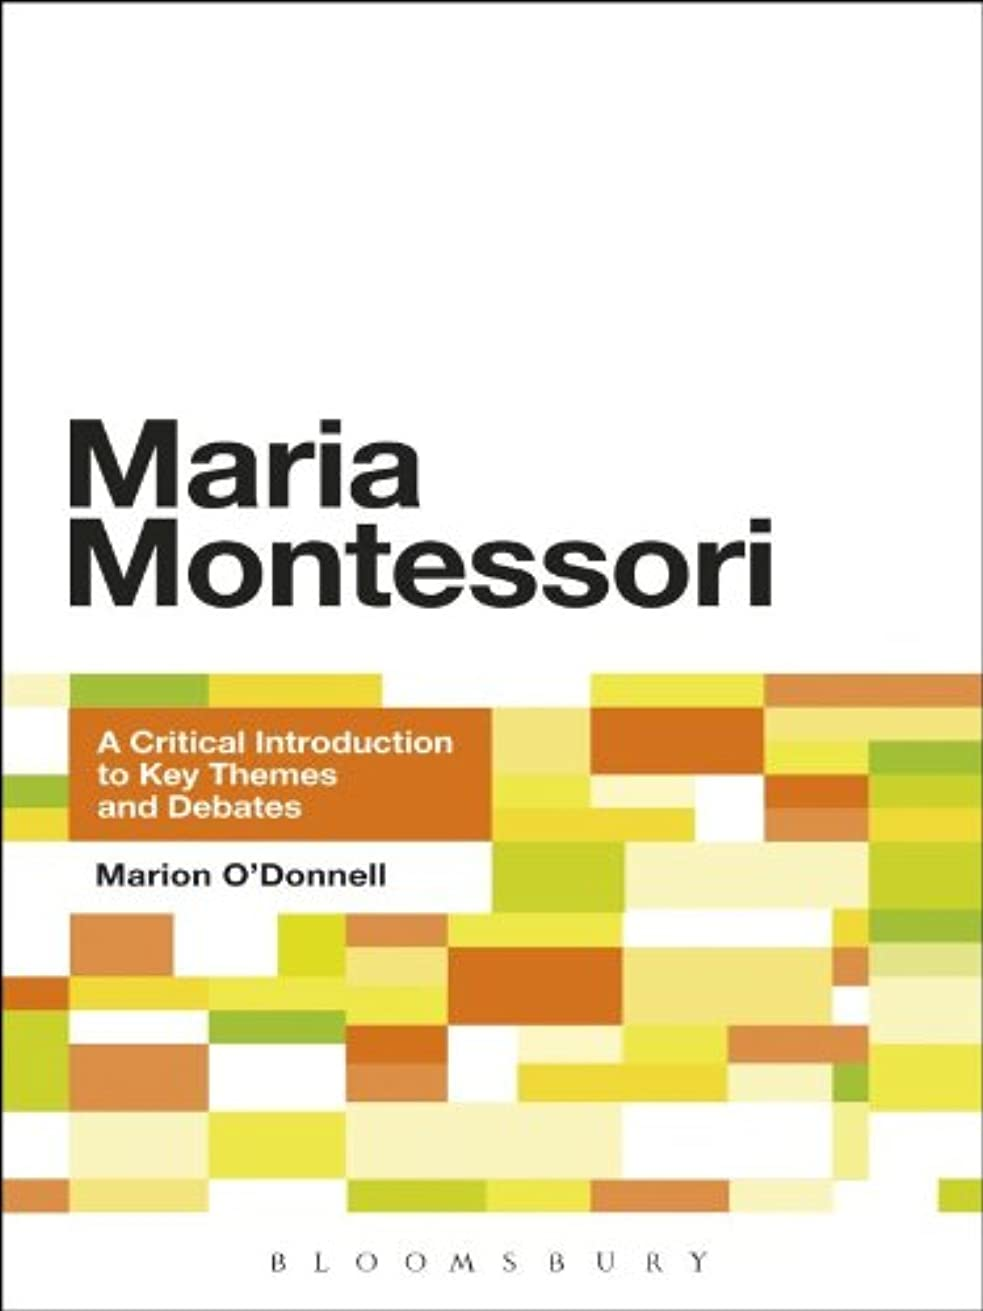 レザー額法律によりMaria Montessori: A Critical Introduction to Key Themes and Debates (English Edition)